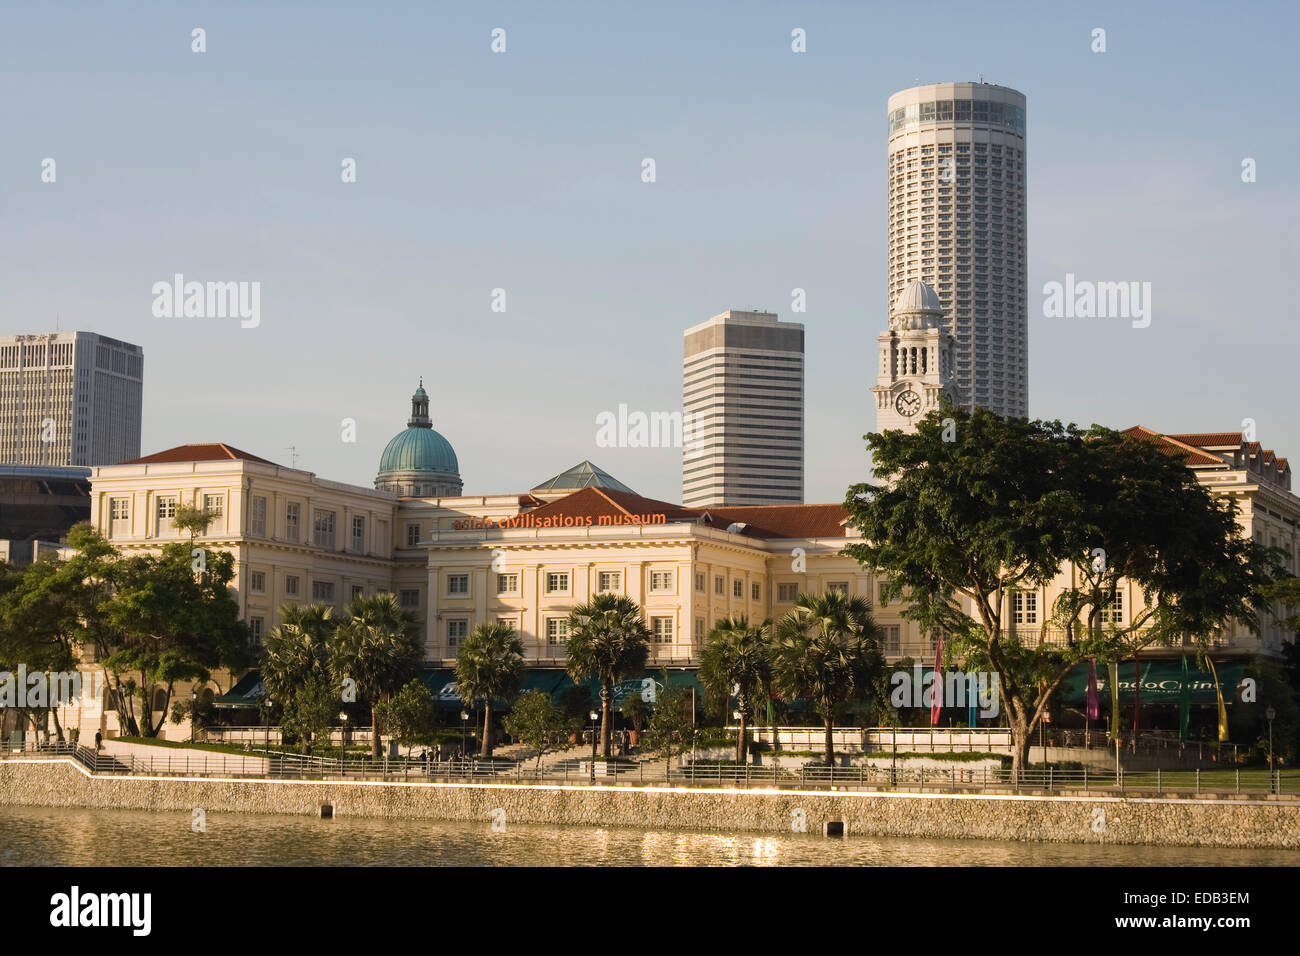 Singapore City,Singapore River with the Asian Civilisation Museum in the evening sun - Stock Image